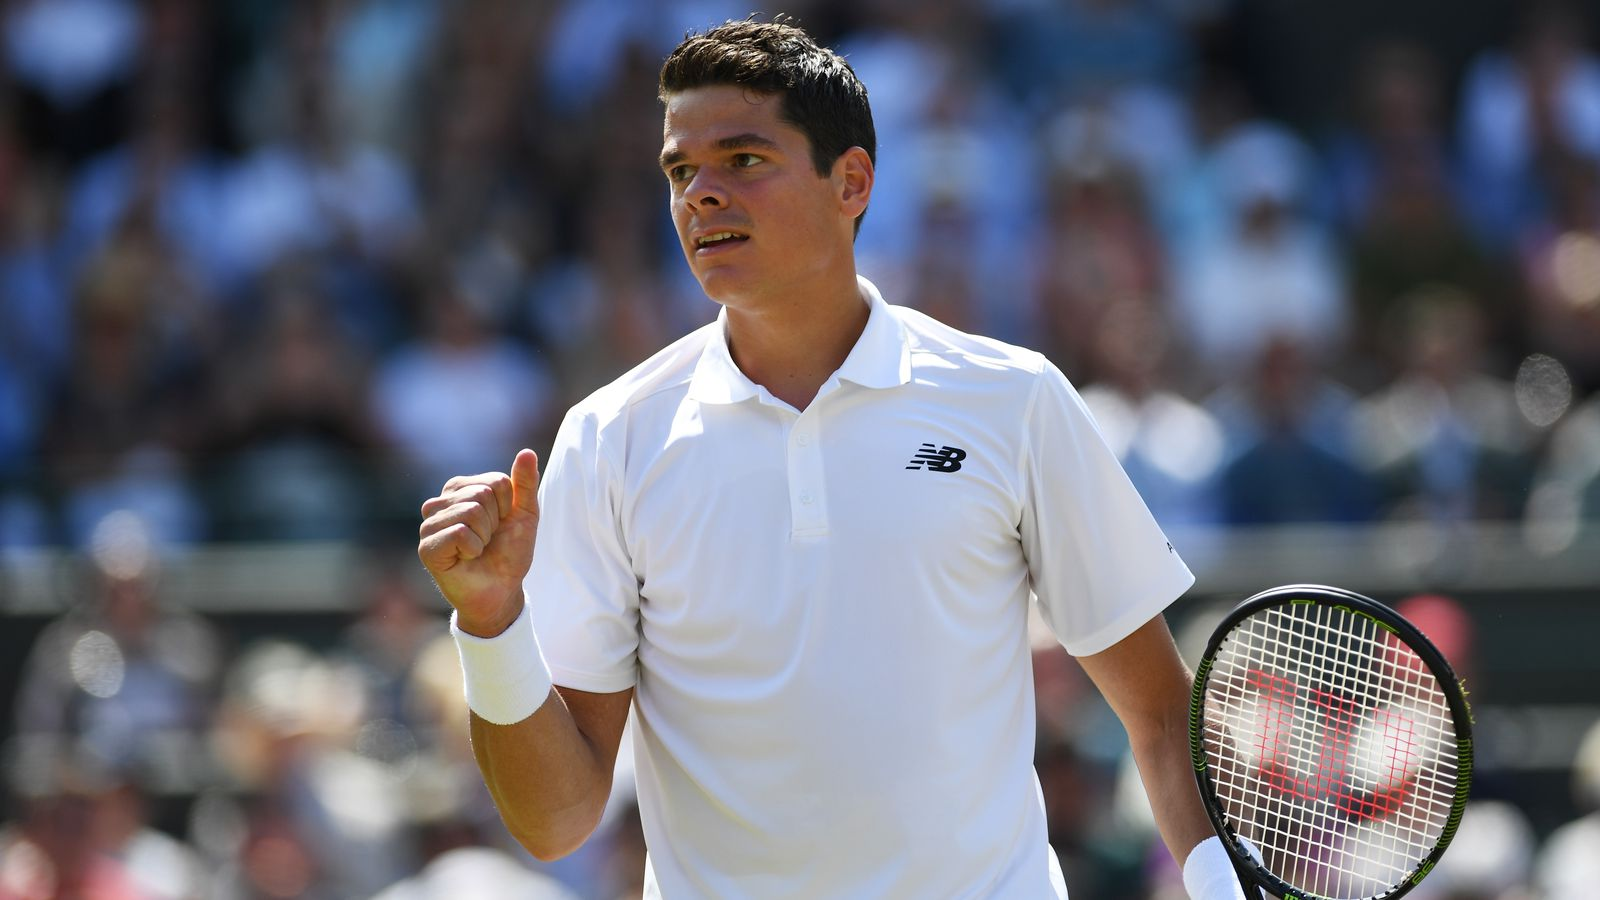 How to watch Roger Federer vs Milos Raonic Match LIVE